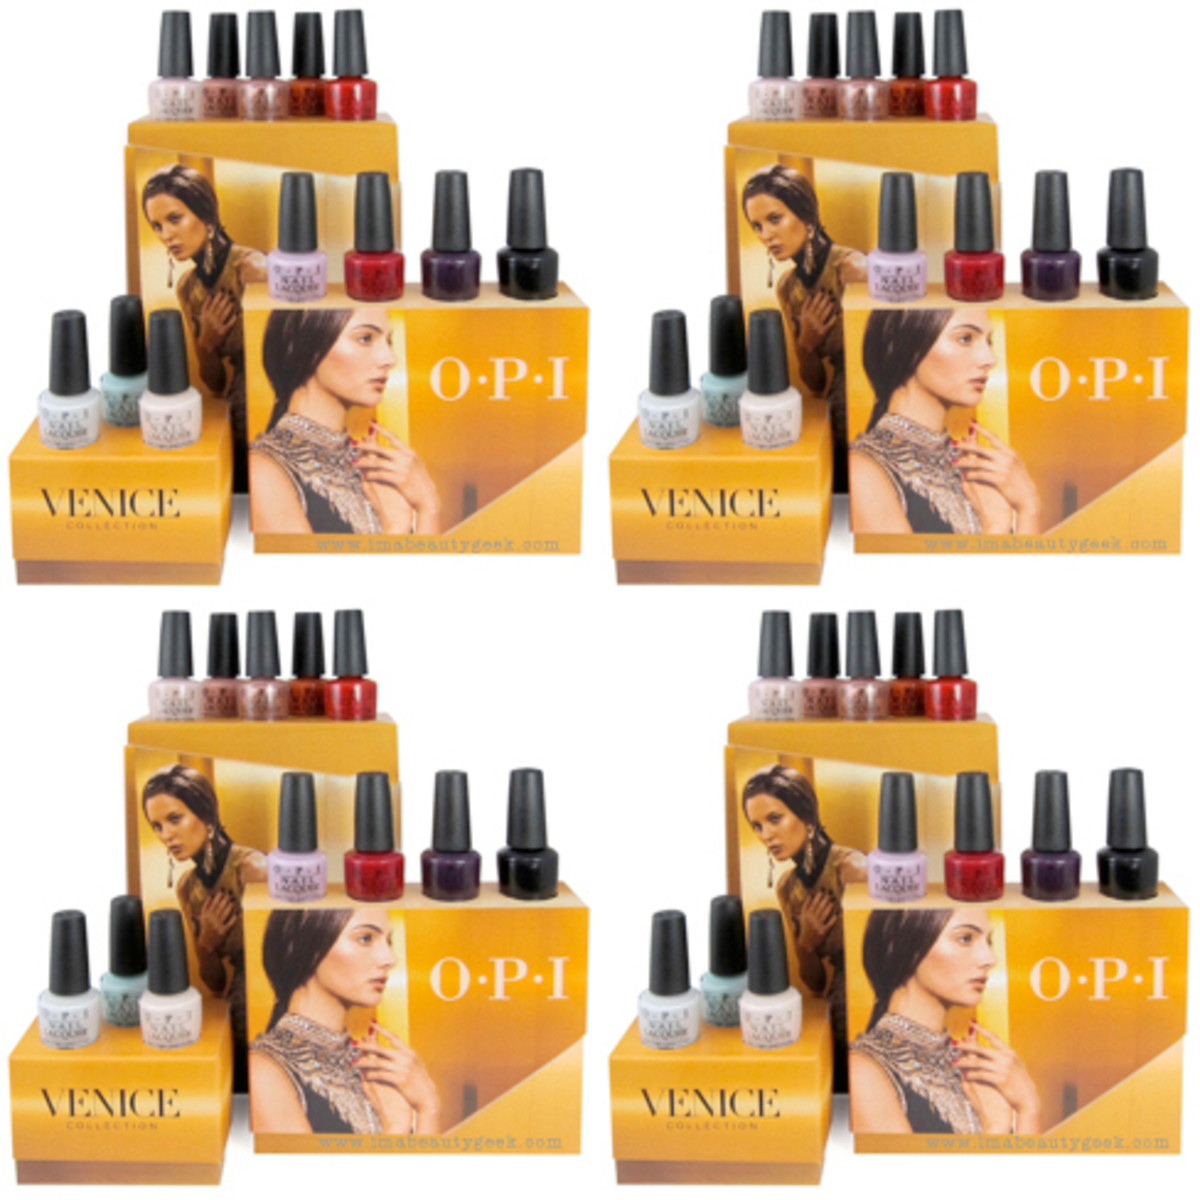 OPI Venice 2015 Collection Display Beautygeeks